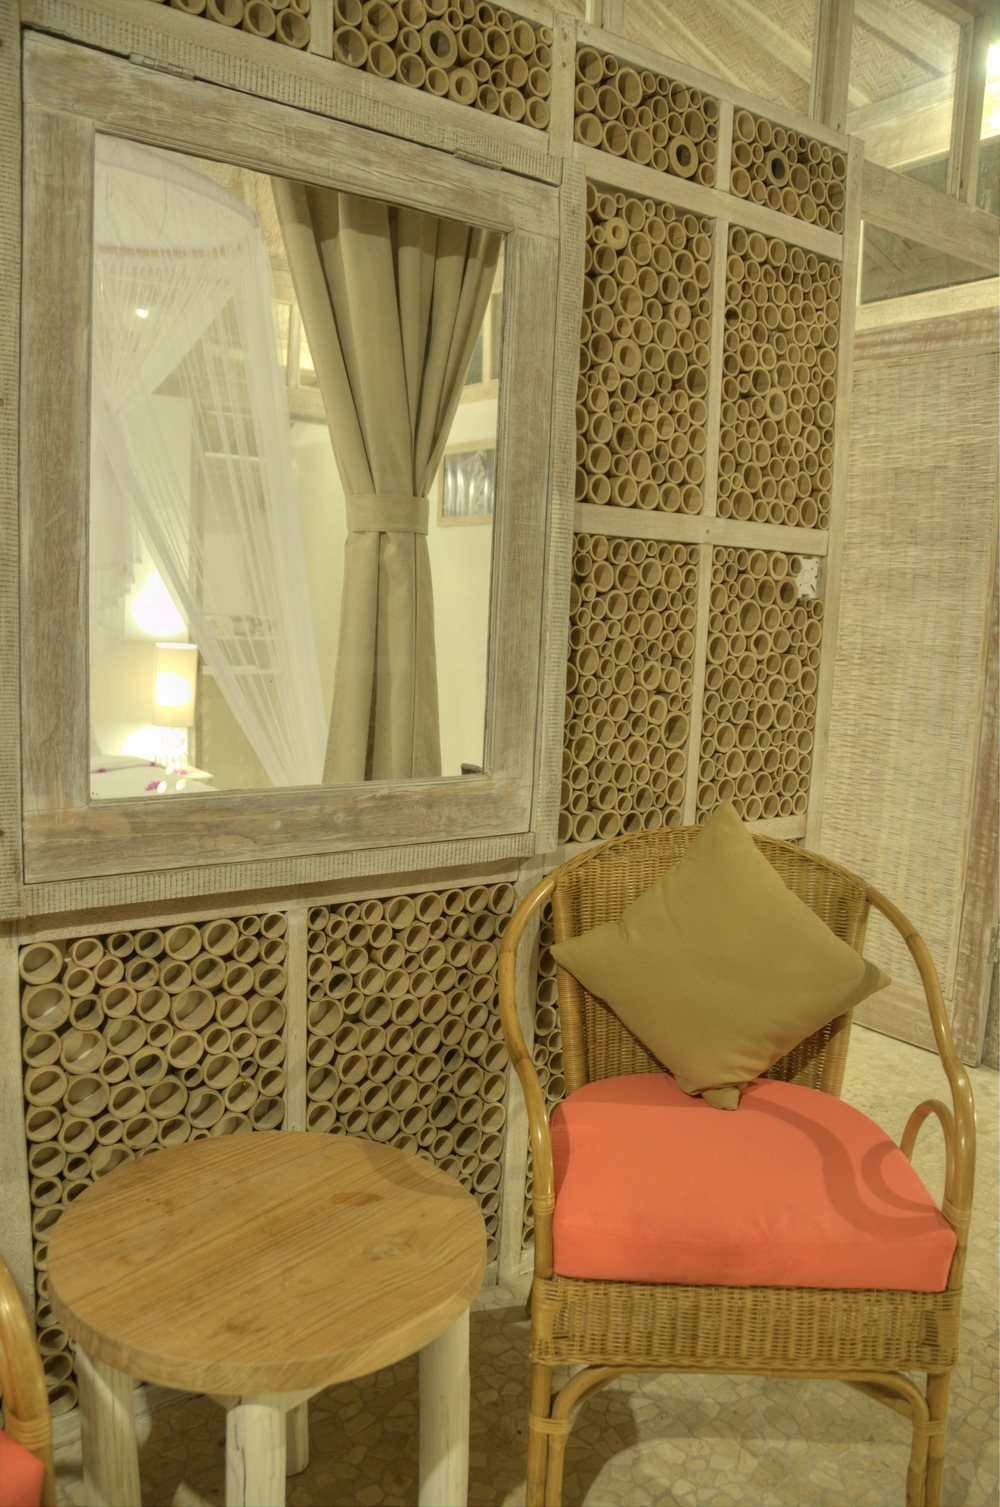 Chair in Bungalow - Les Villas Ottalia